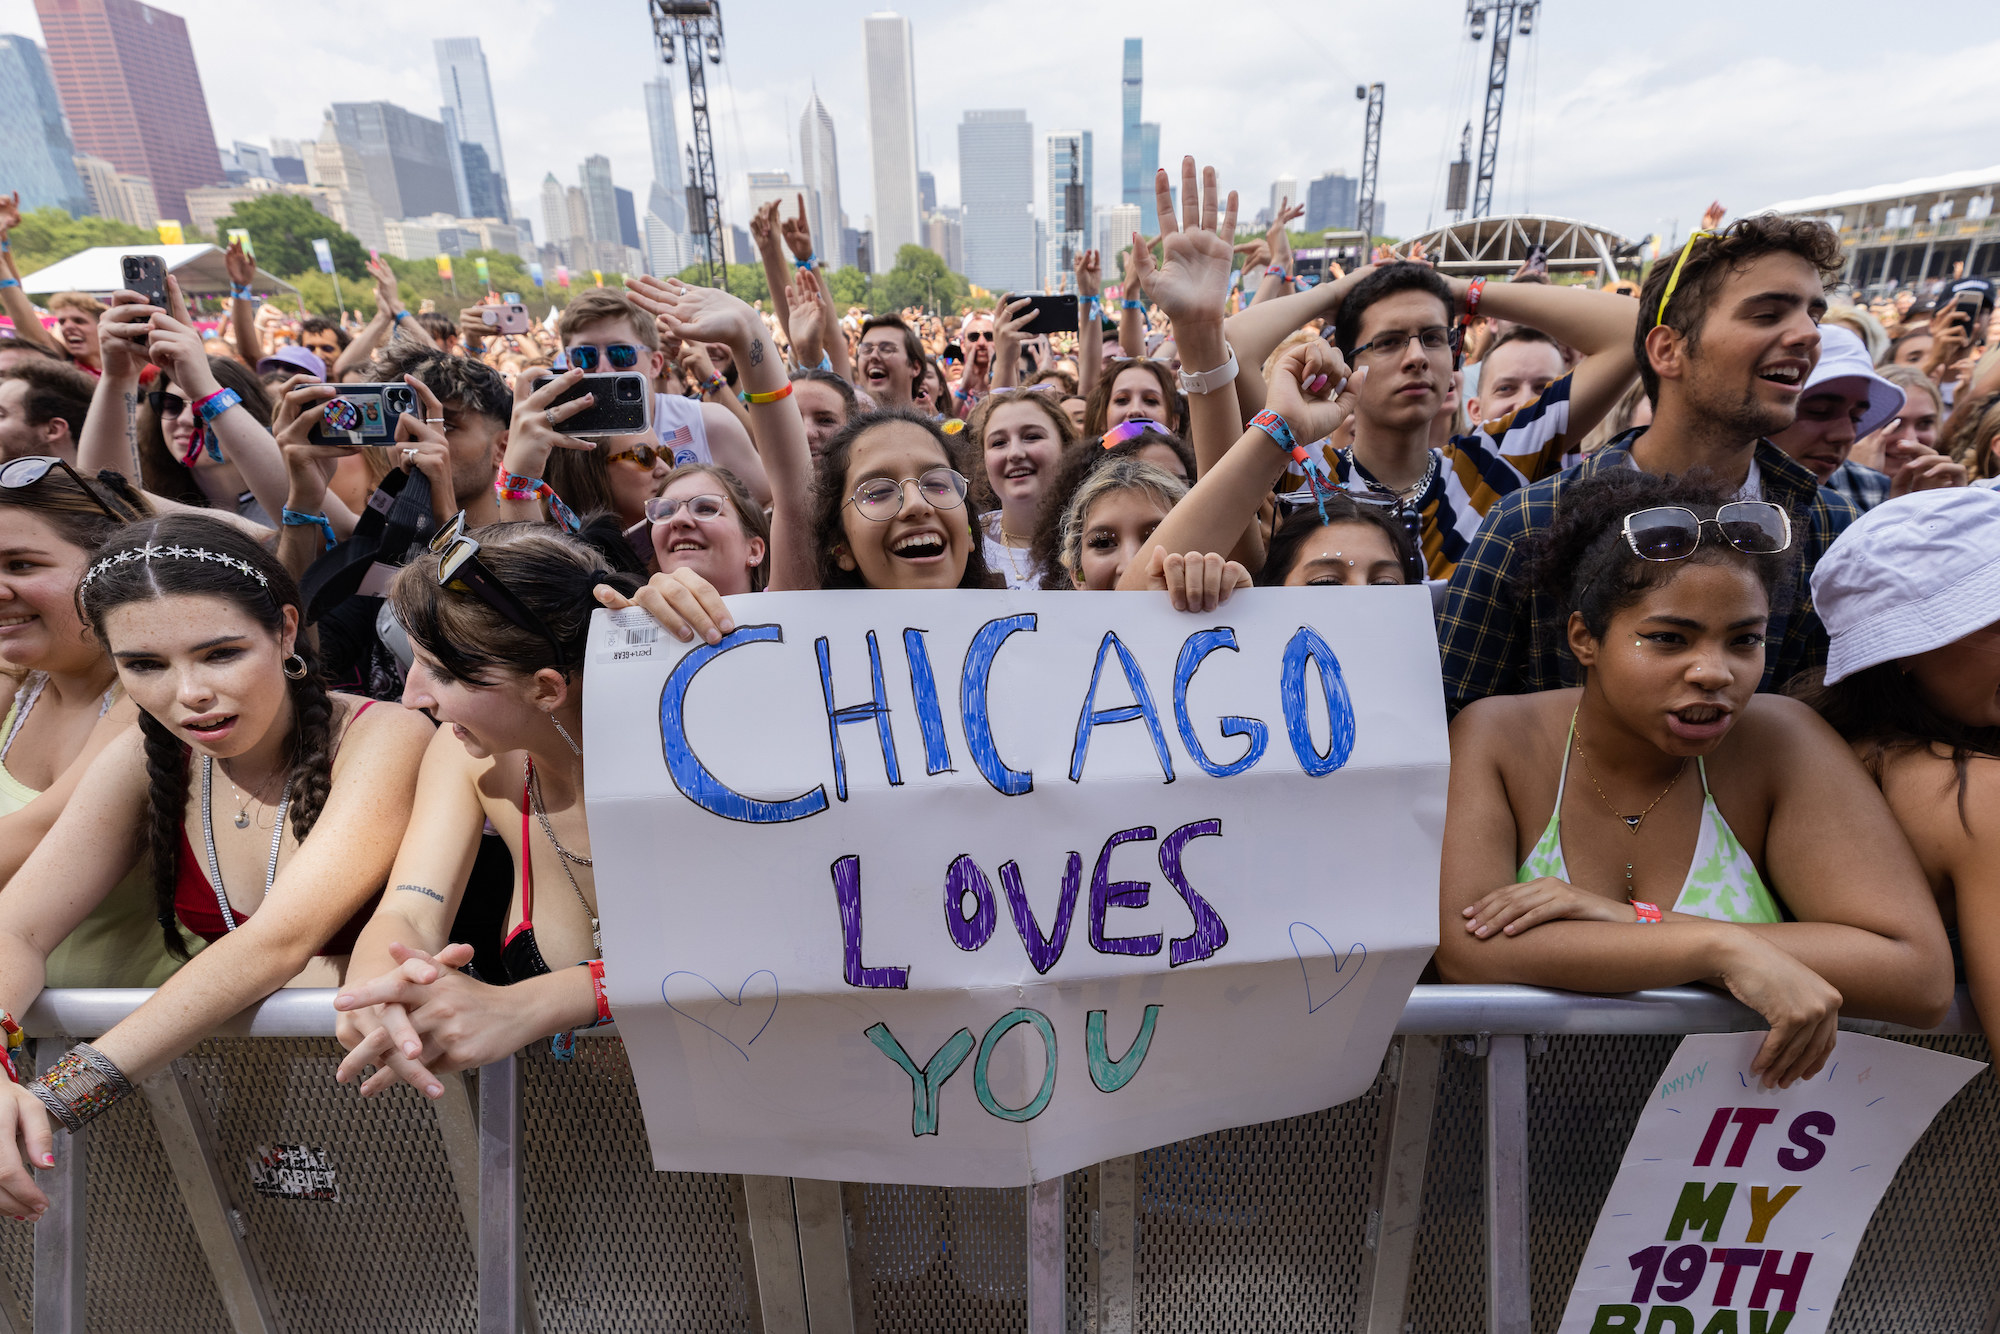 """Festival attendees hold a """"Chicago Loves You"""" sign as they await a performance at Lollapalooza."""